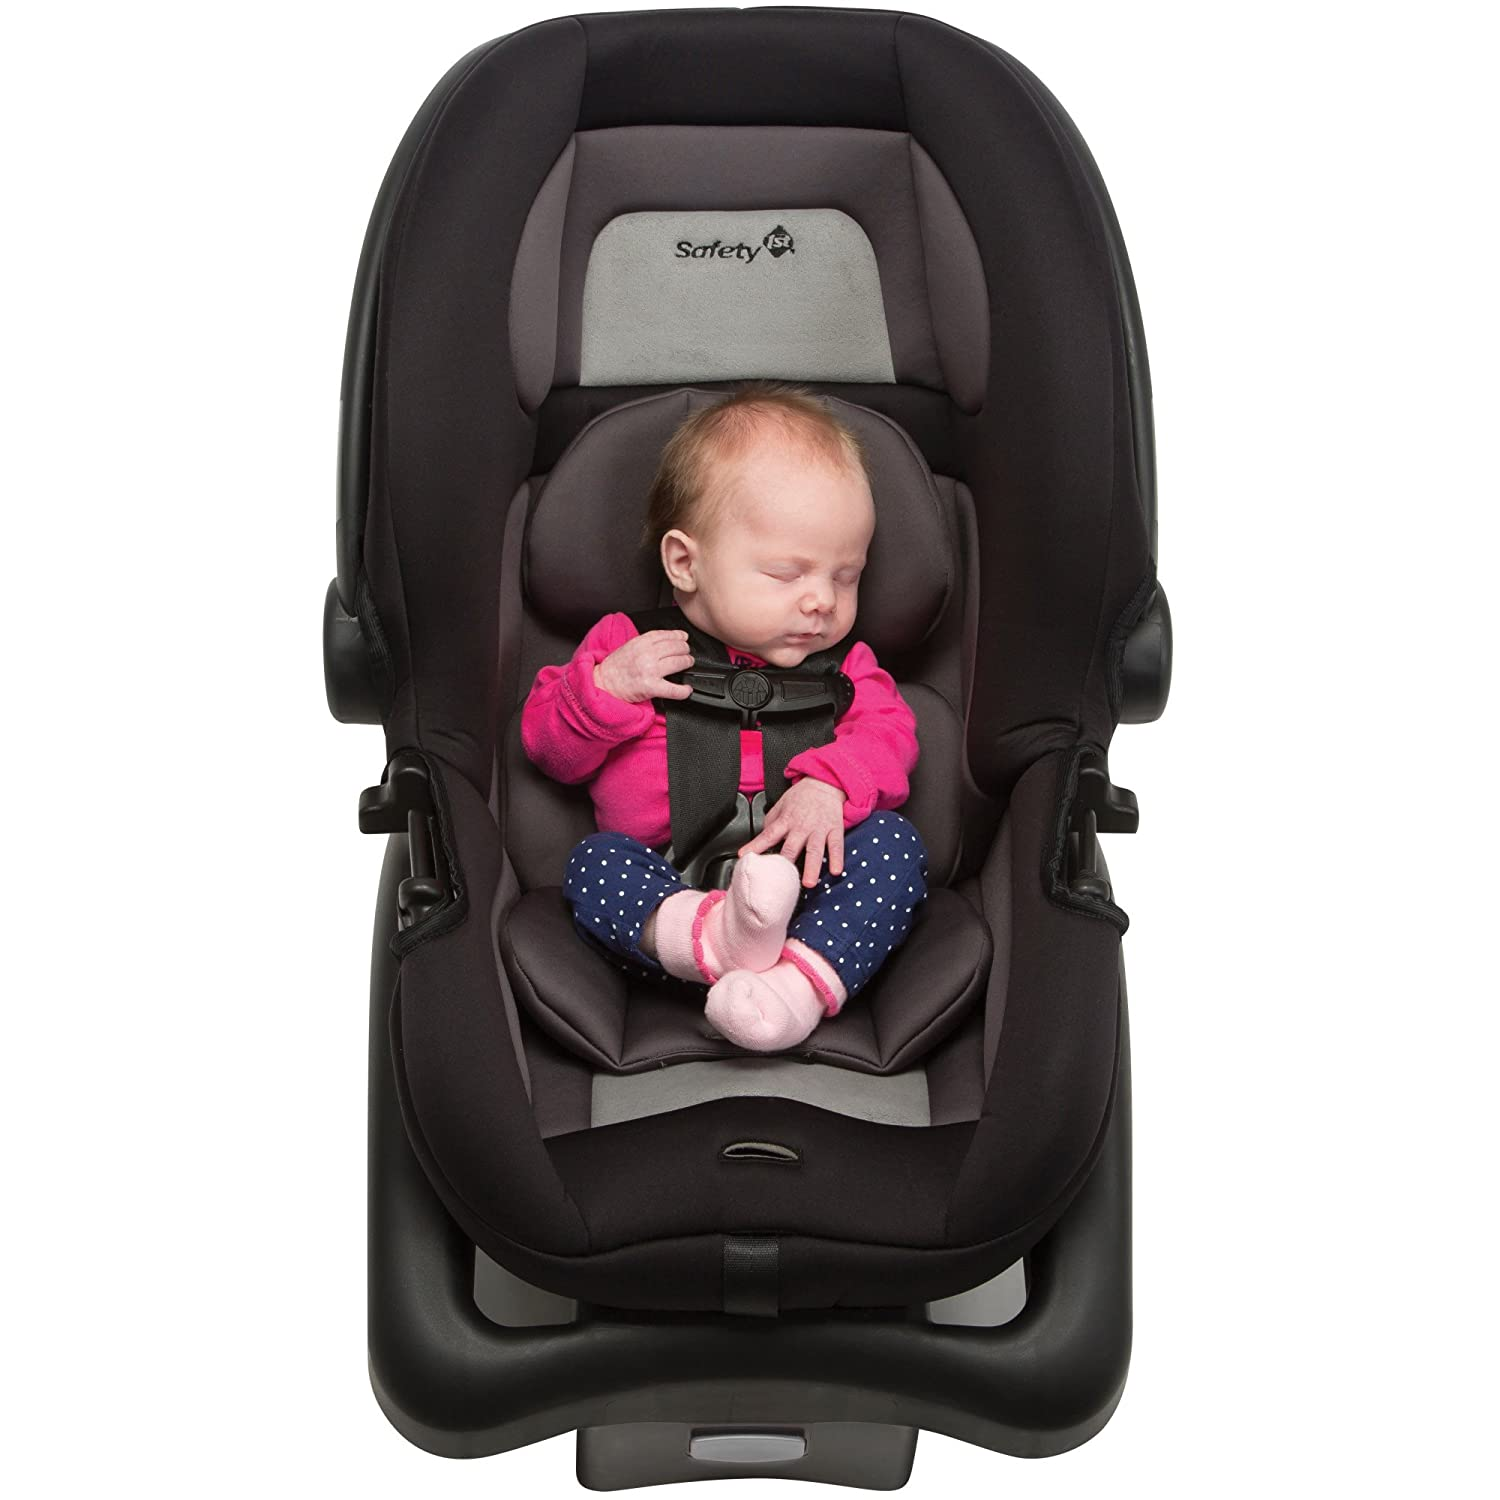 Do You Need An Infant Car Seat Base